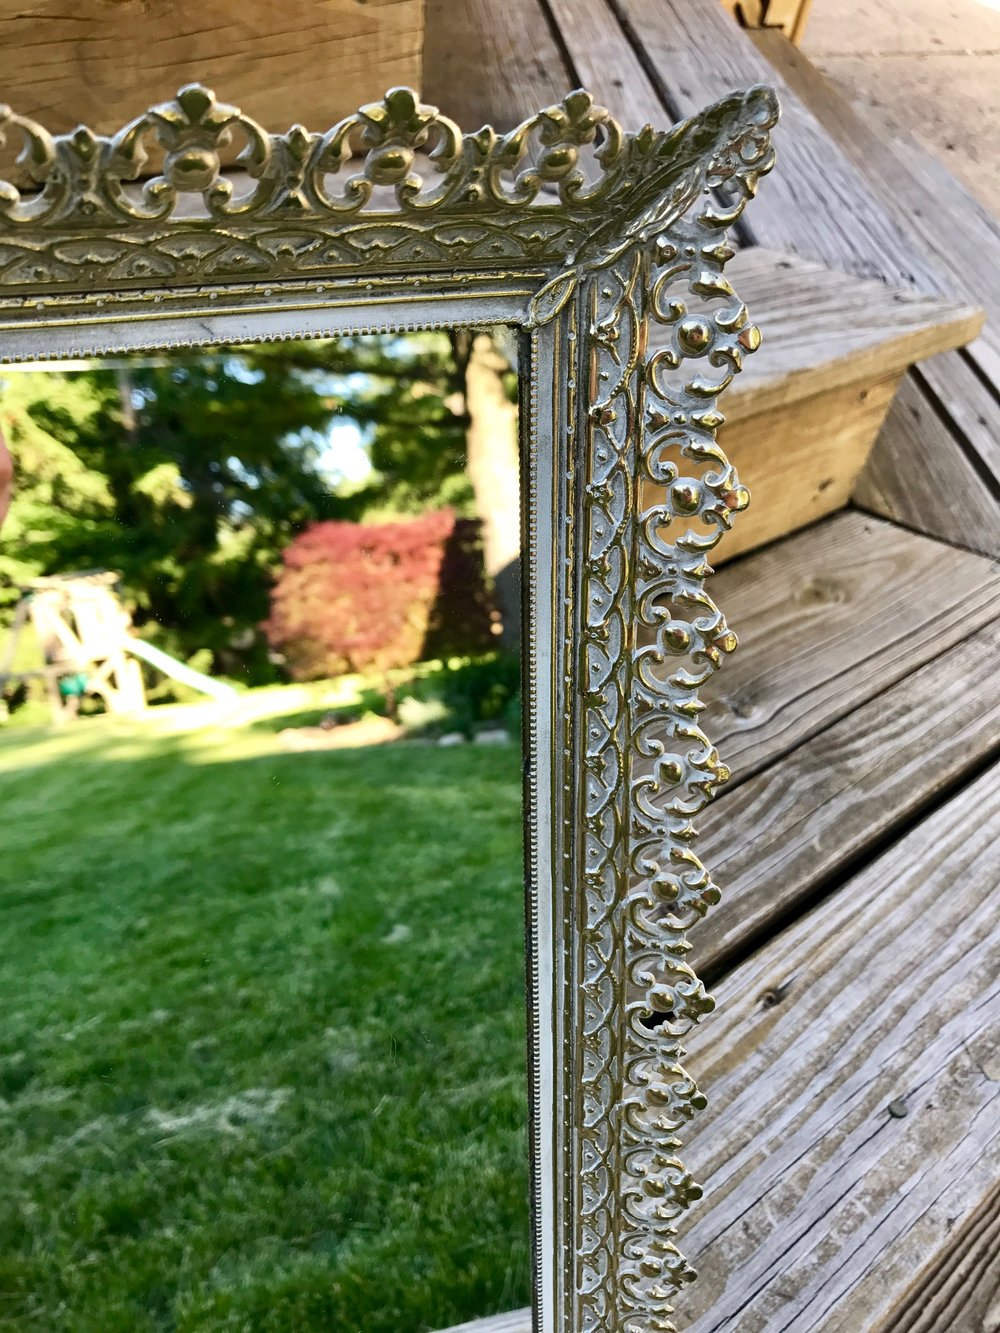 Gold Table Top Mirror - Close Up